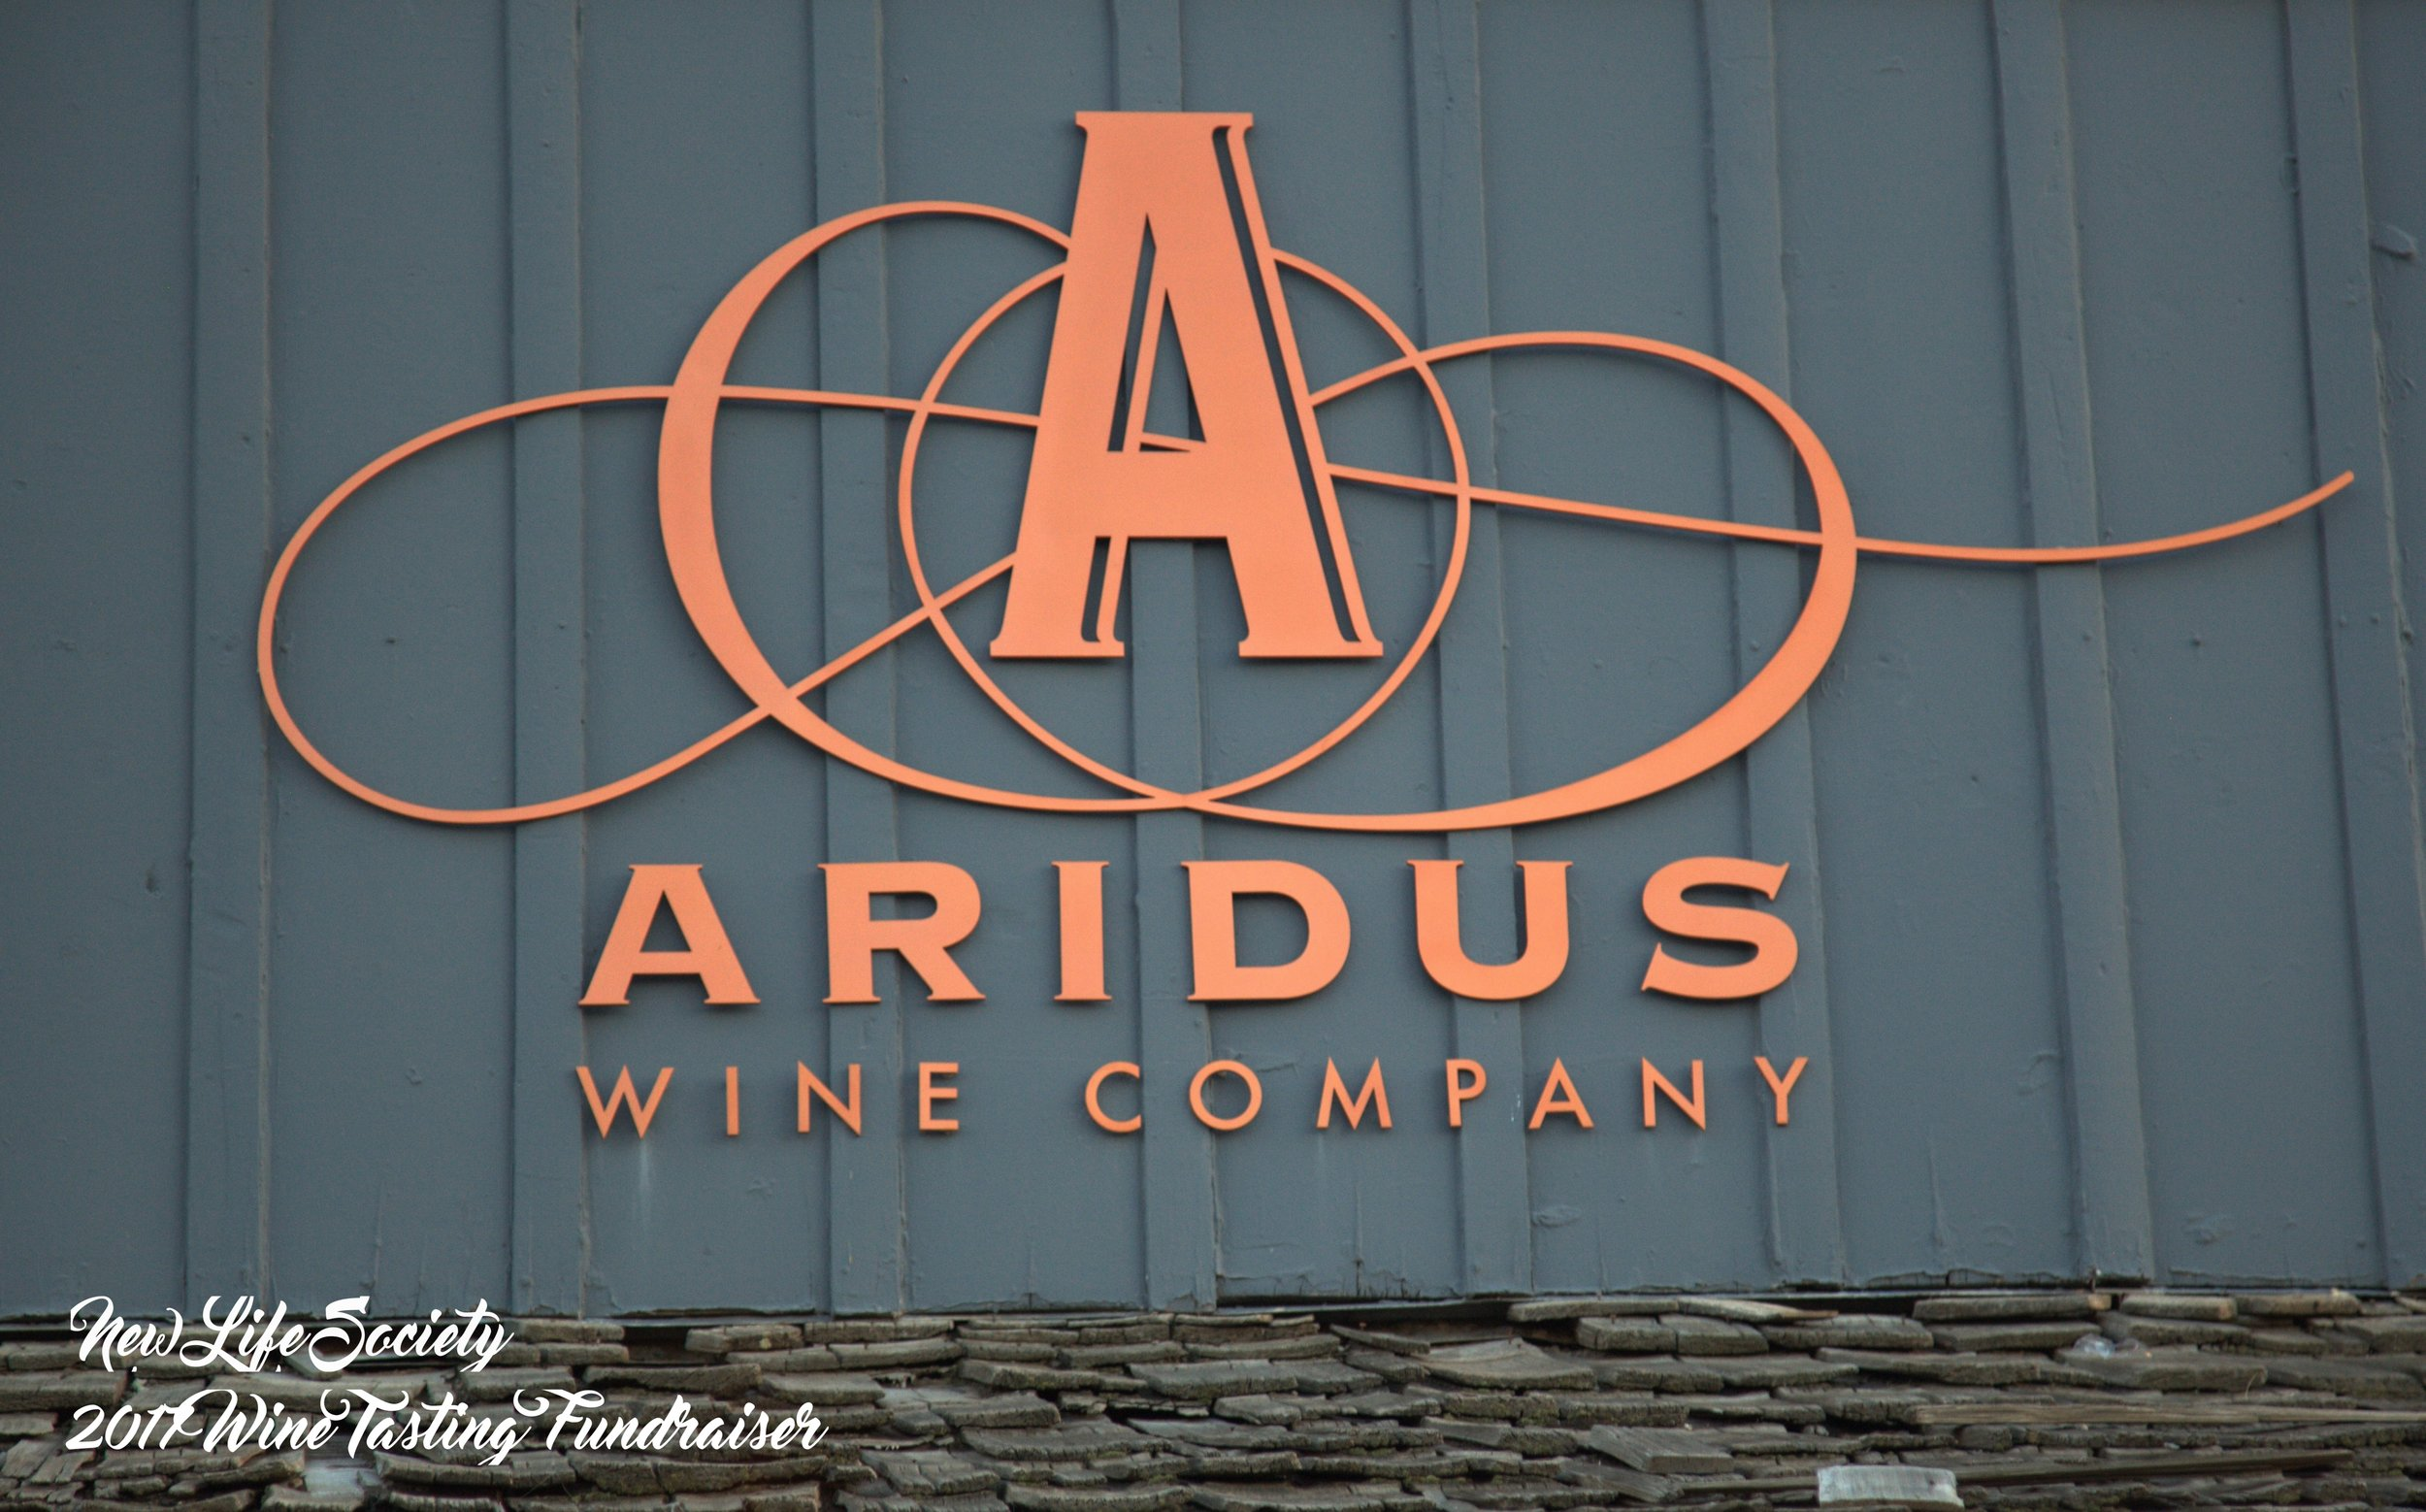 2017 Wine Tasting Fundraiser at Aridus Wine Co in Scottsdale, AZ